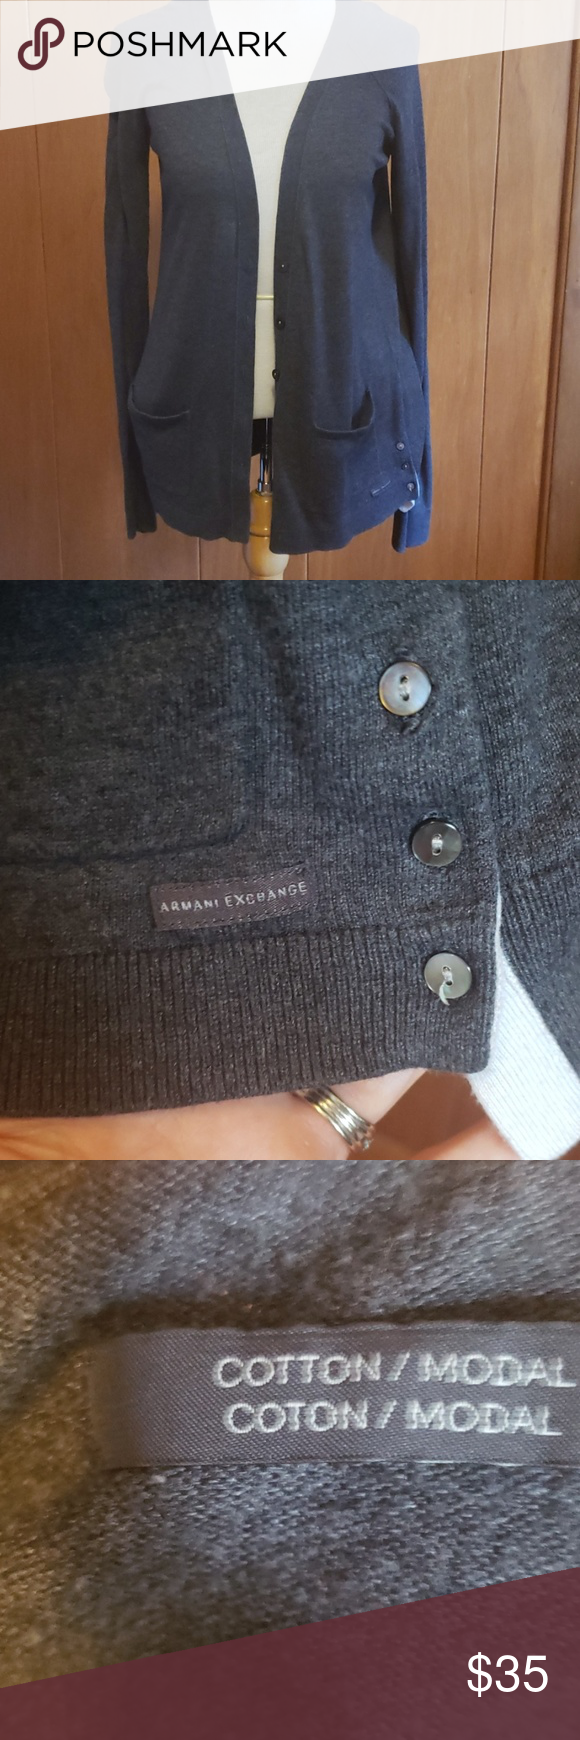 Armani Exchange Cardigan This is in excellent condition.  The size tag has been ...#armani #cardigan #condition #excellent #exchange #size #tag